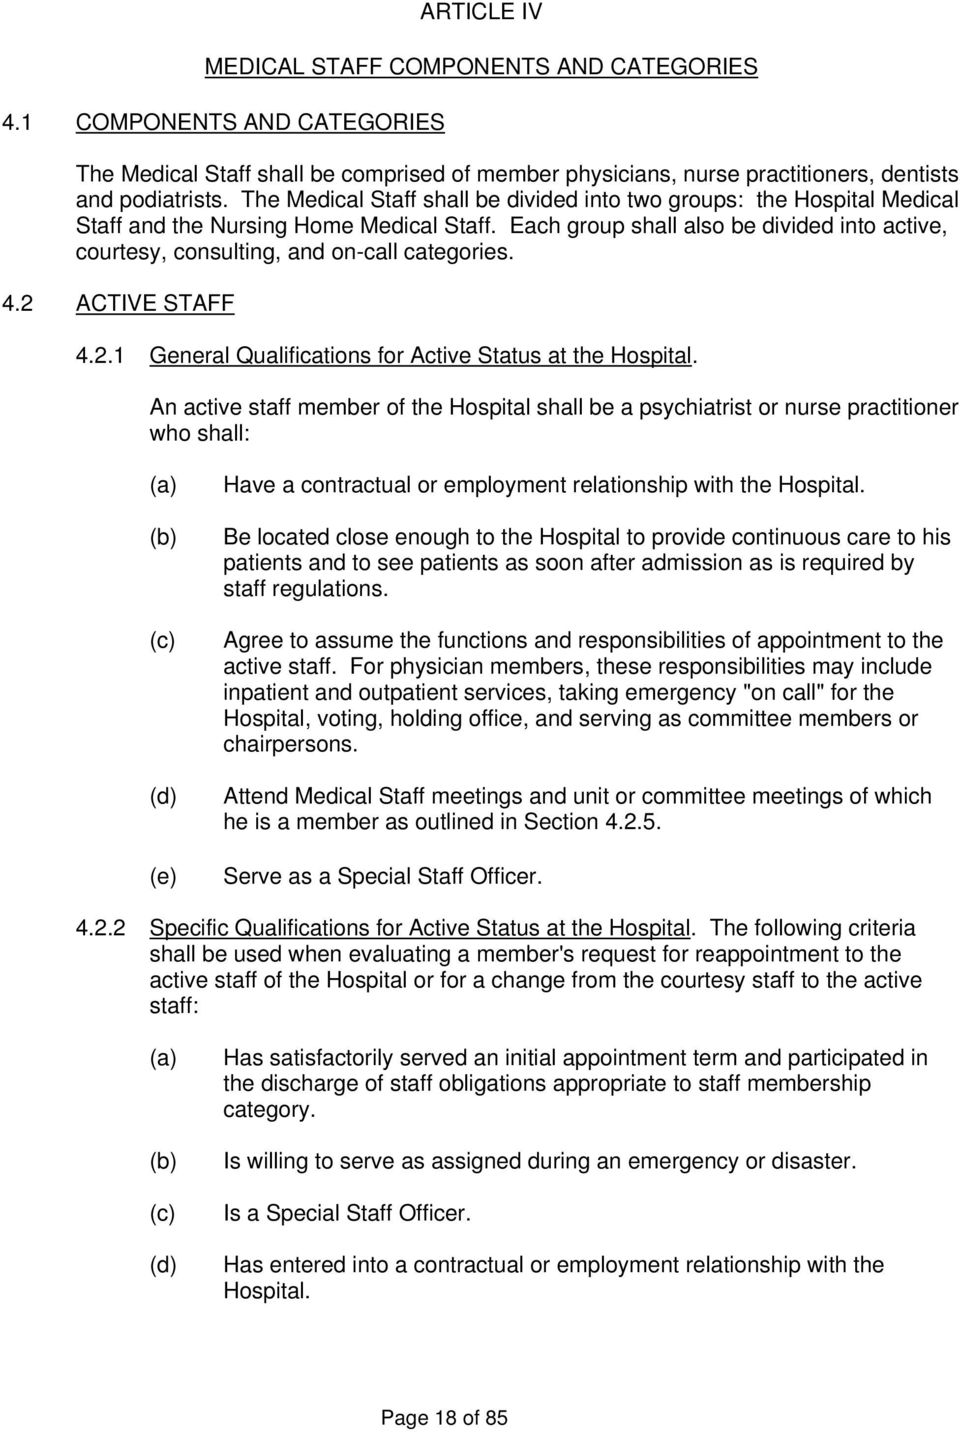 Each group shall also be divided into active, courtesy, consulting, and on-call categories. 4.2 ACTIVE STAFF 4.2.1 General Qualifications for Active Status at the Hospital.